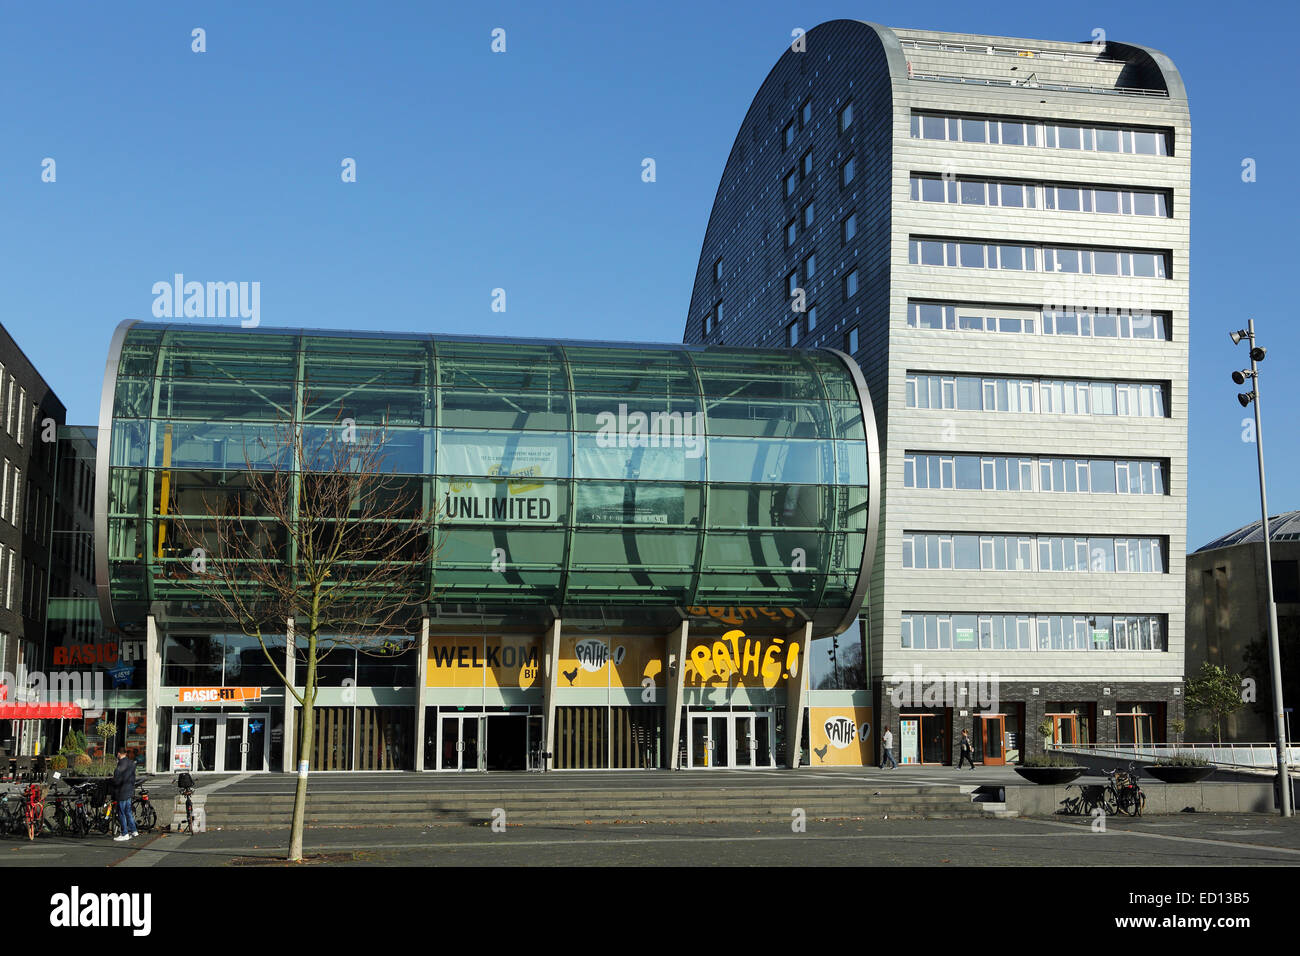 The Pathe Cinema in Breda, the Netherlands. The design of the cinema is modern. - Stock Image